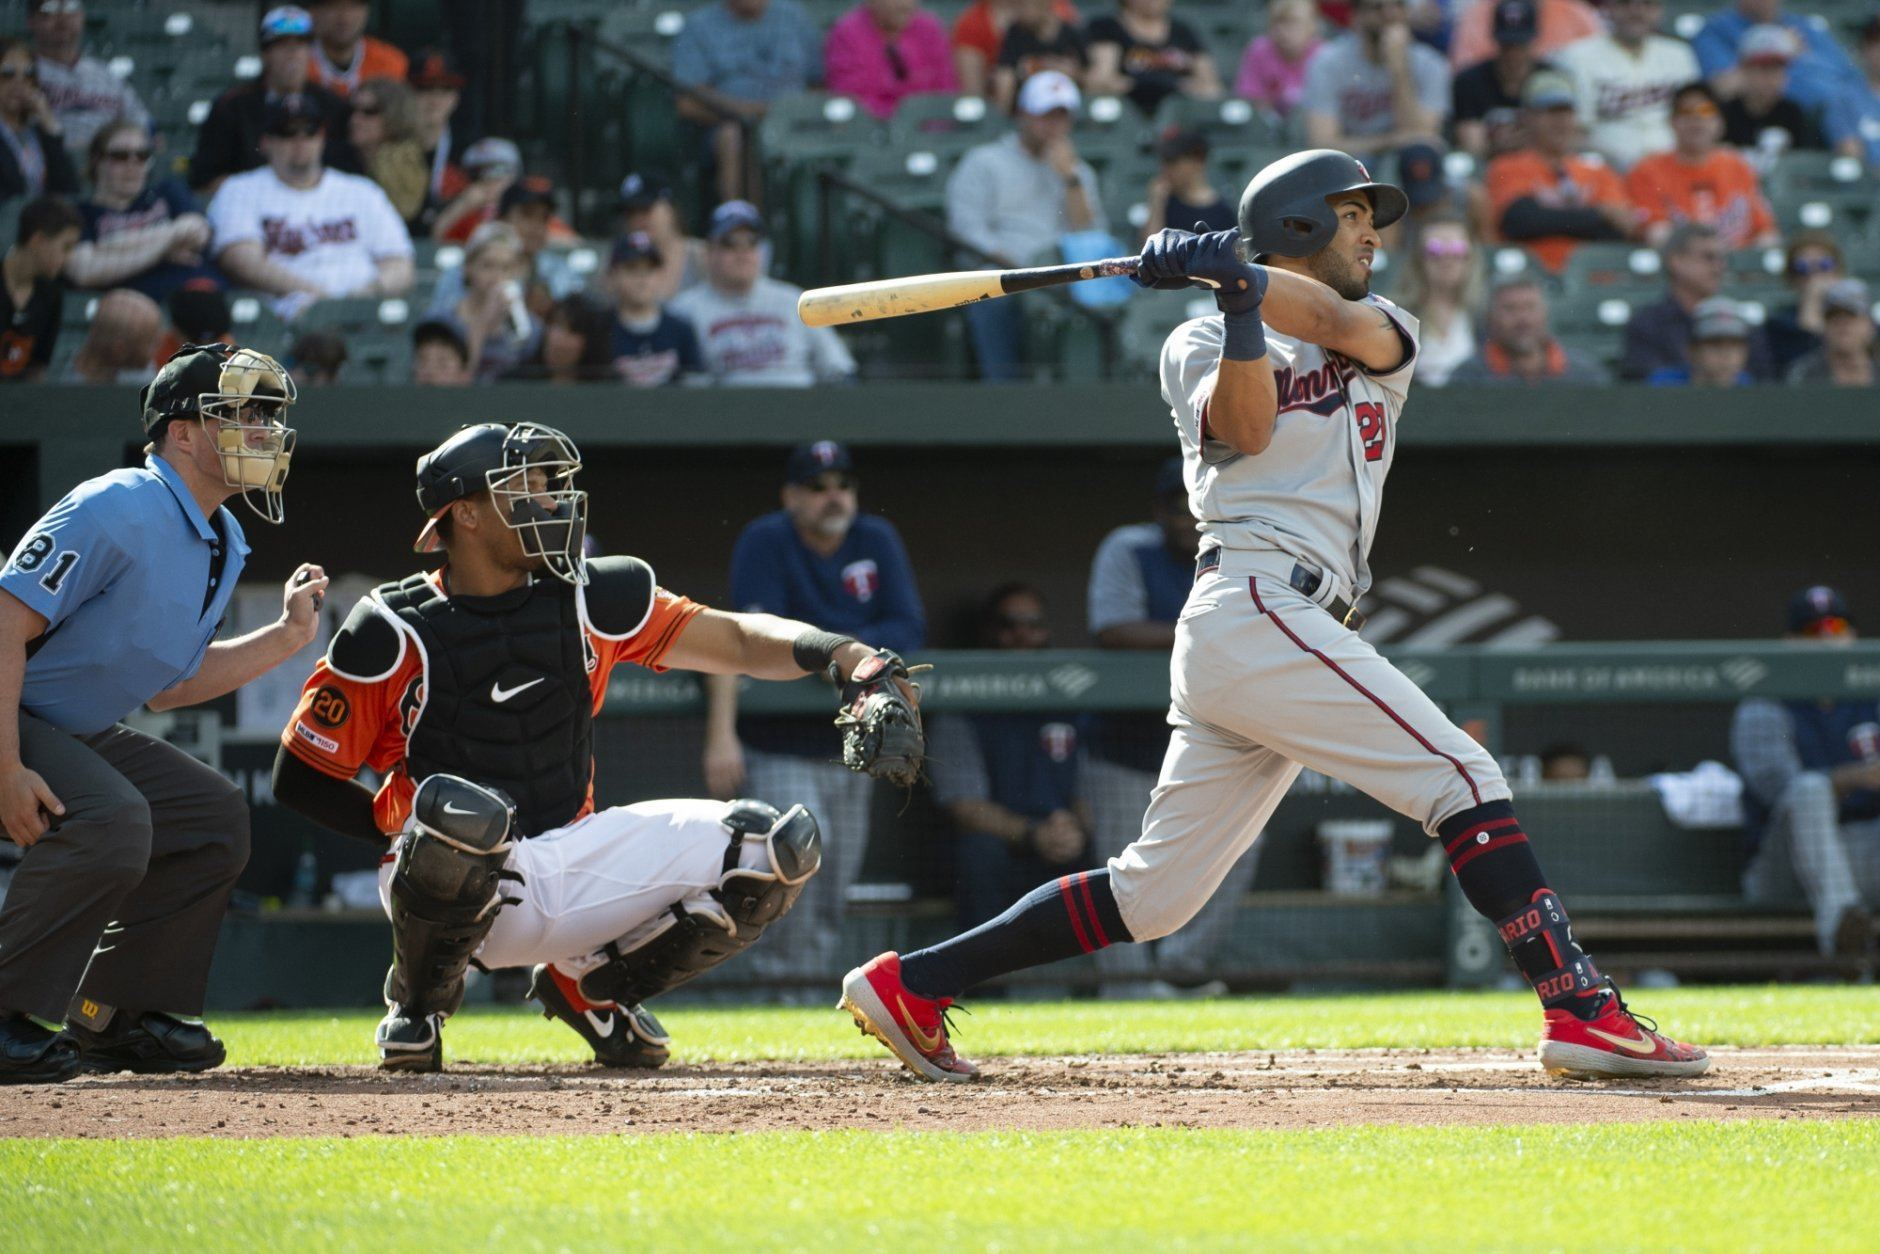 Minnesota Twins' Eddie Rosario, right, hits a solo home run in the second inning of a baseball game against the Baltimore Orioles, Saturday, April 20, 2019, in Baltimore. (AP Photo/Tommy Gilligan)